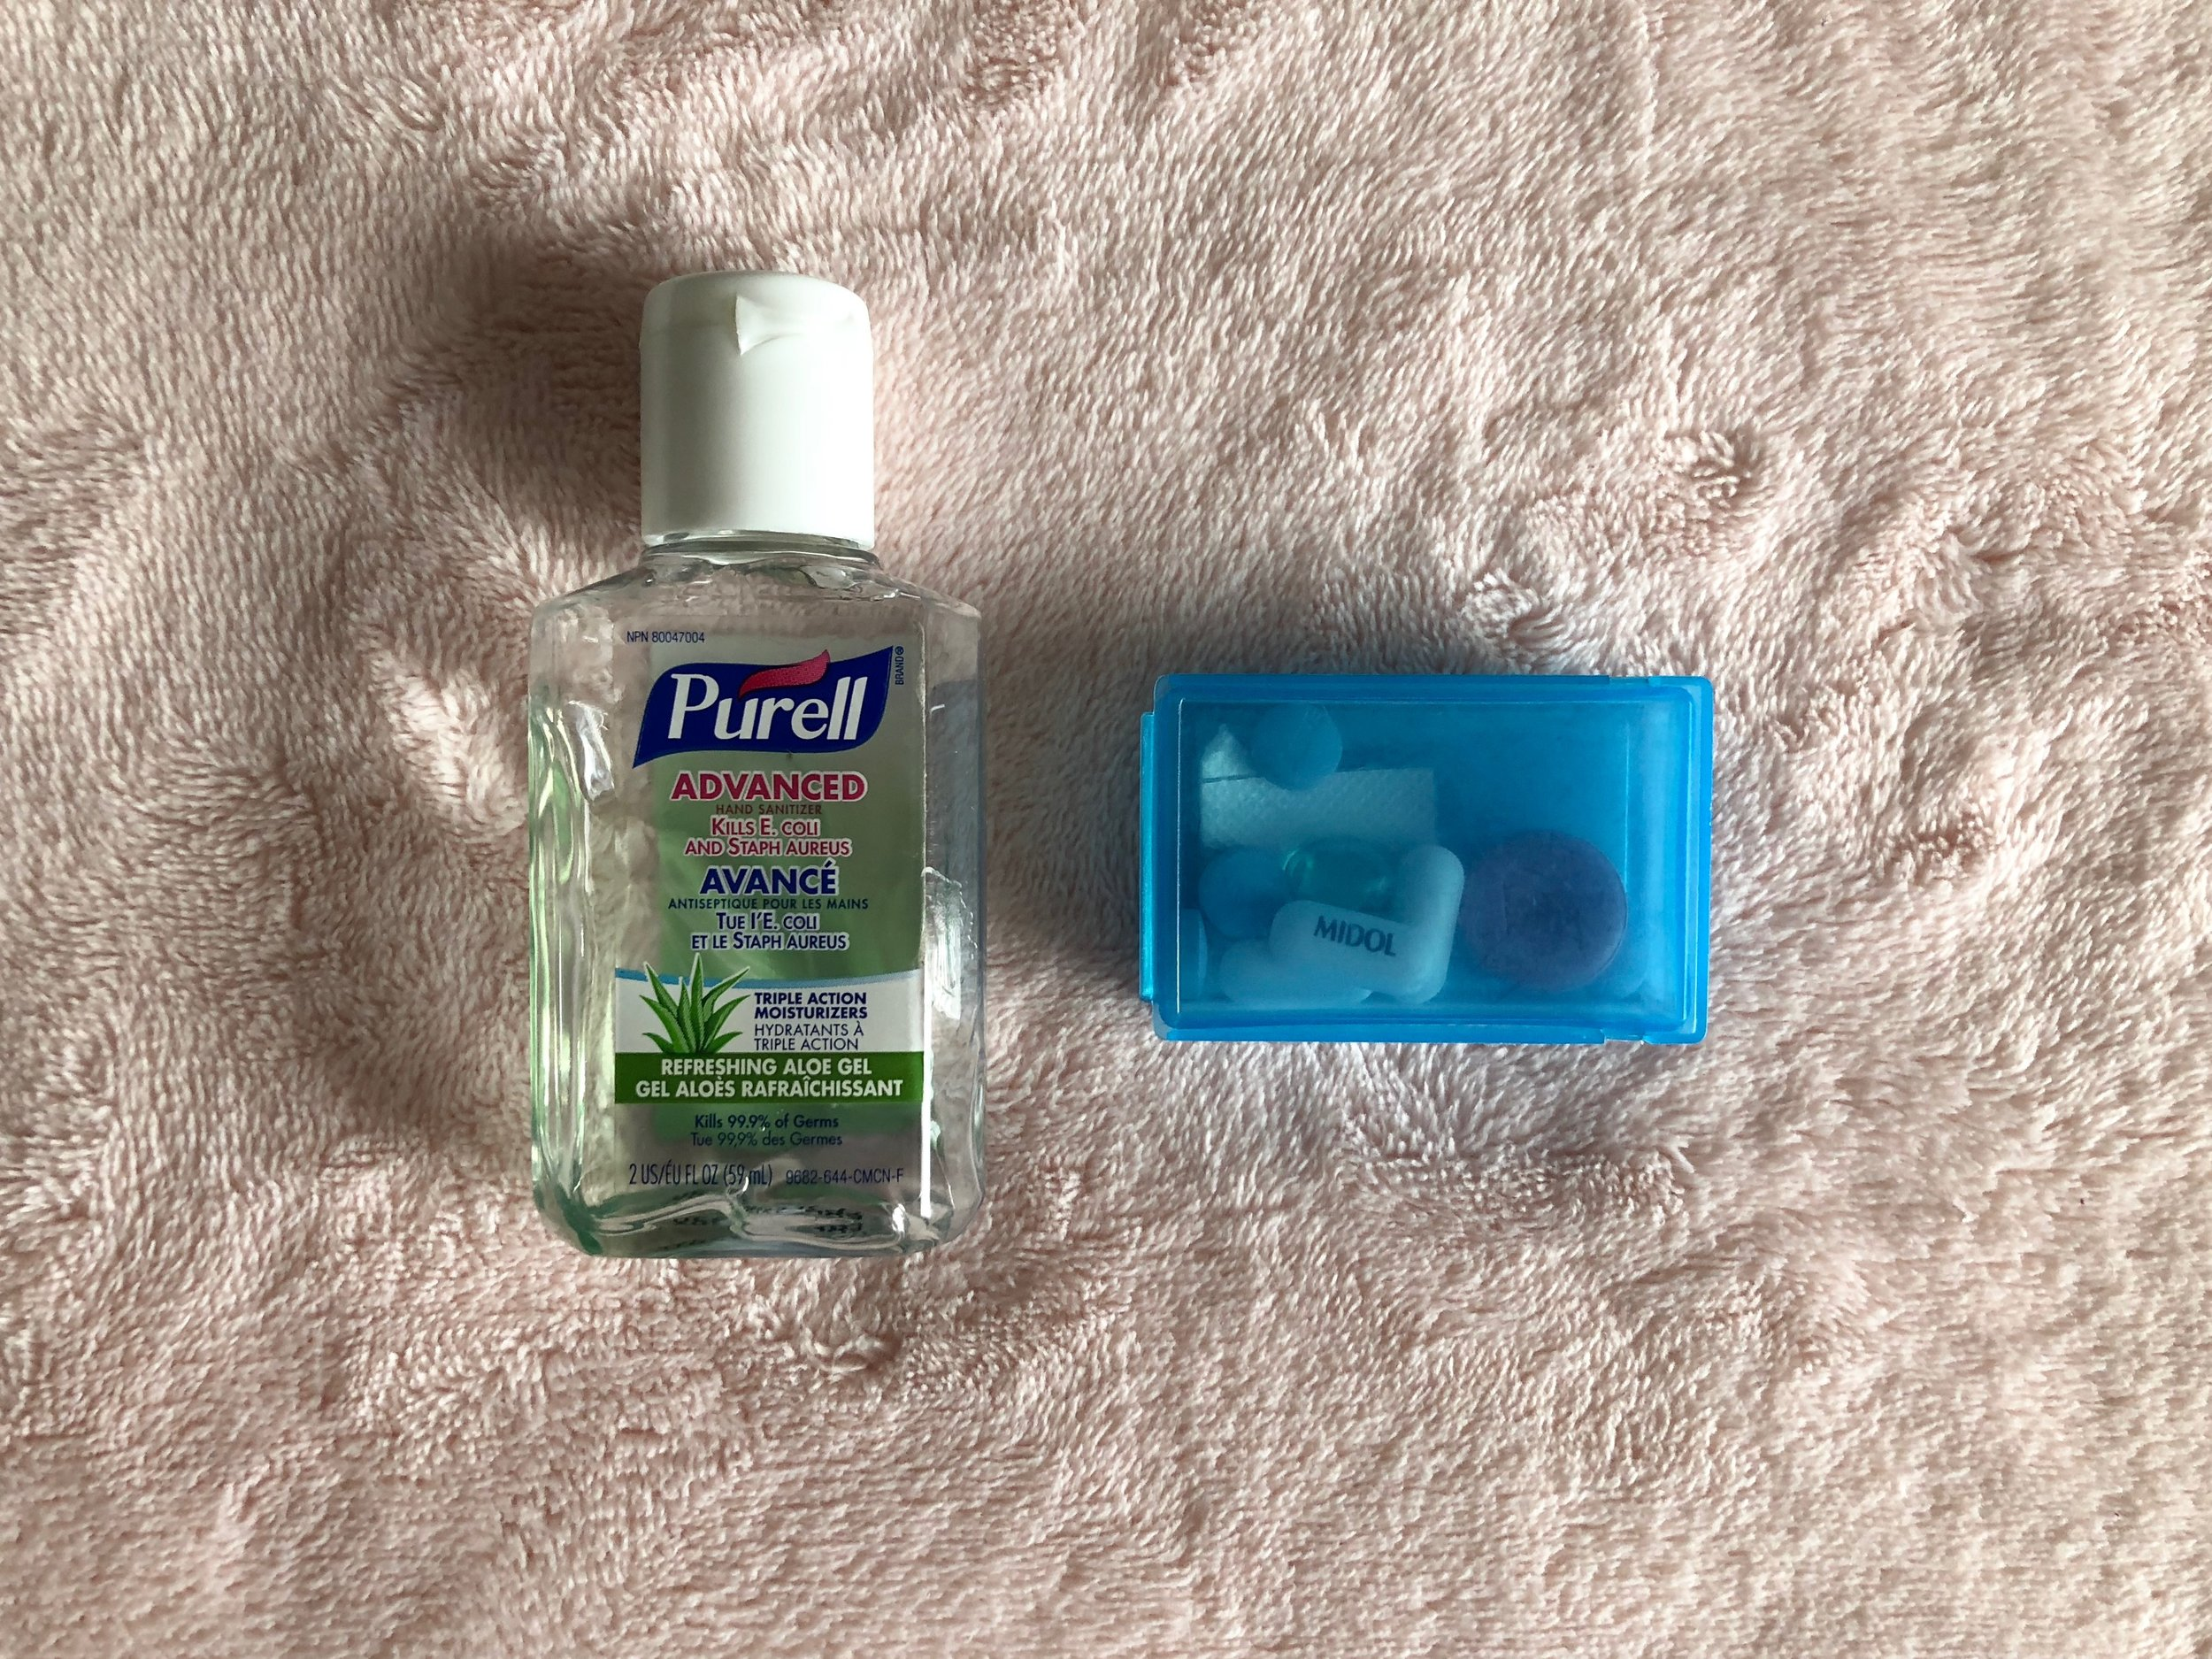 Sanitizer + Meds - As Disney is a theme park and many people pass through, I always have hand sanitizer on me and make sure to use it whenever I'm about to eat. I also bring an assortment of basic meds with me, like Aleve, Midol, and Pepcid for emergencies.